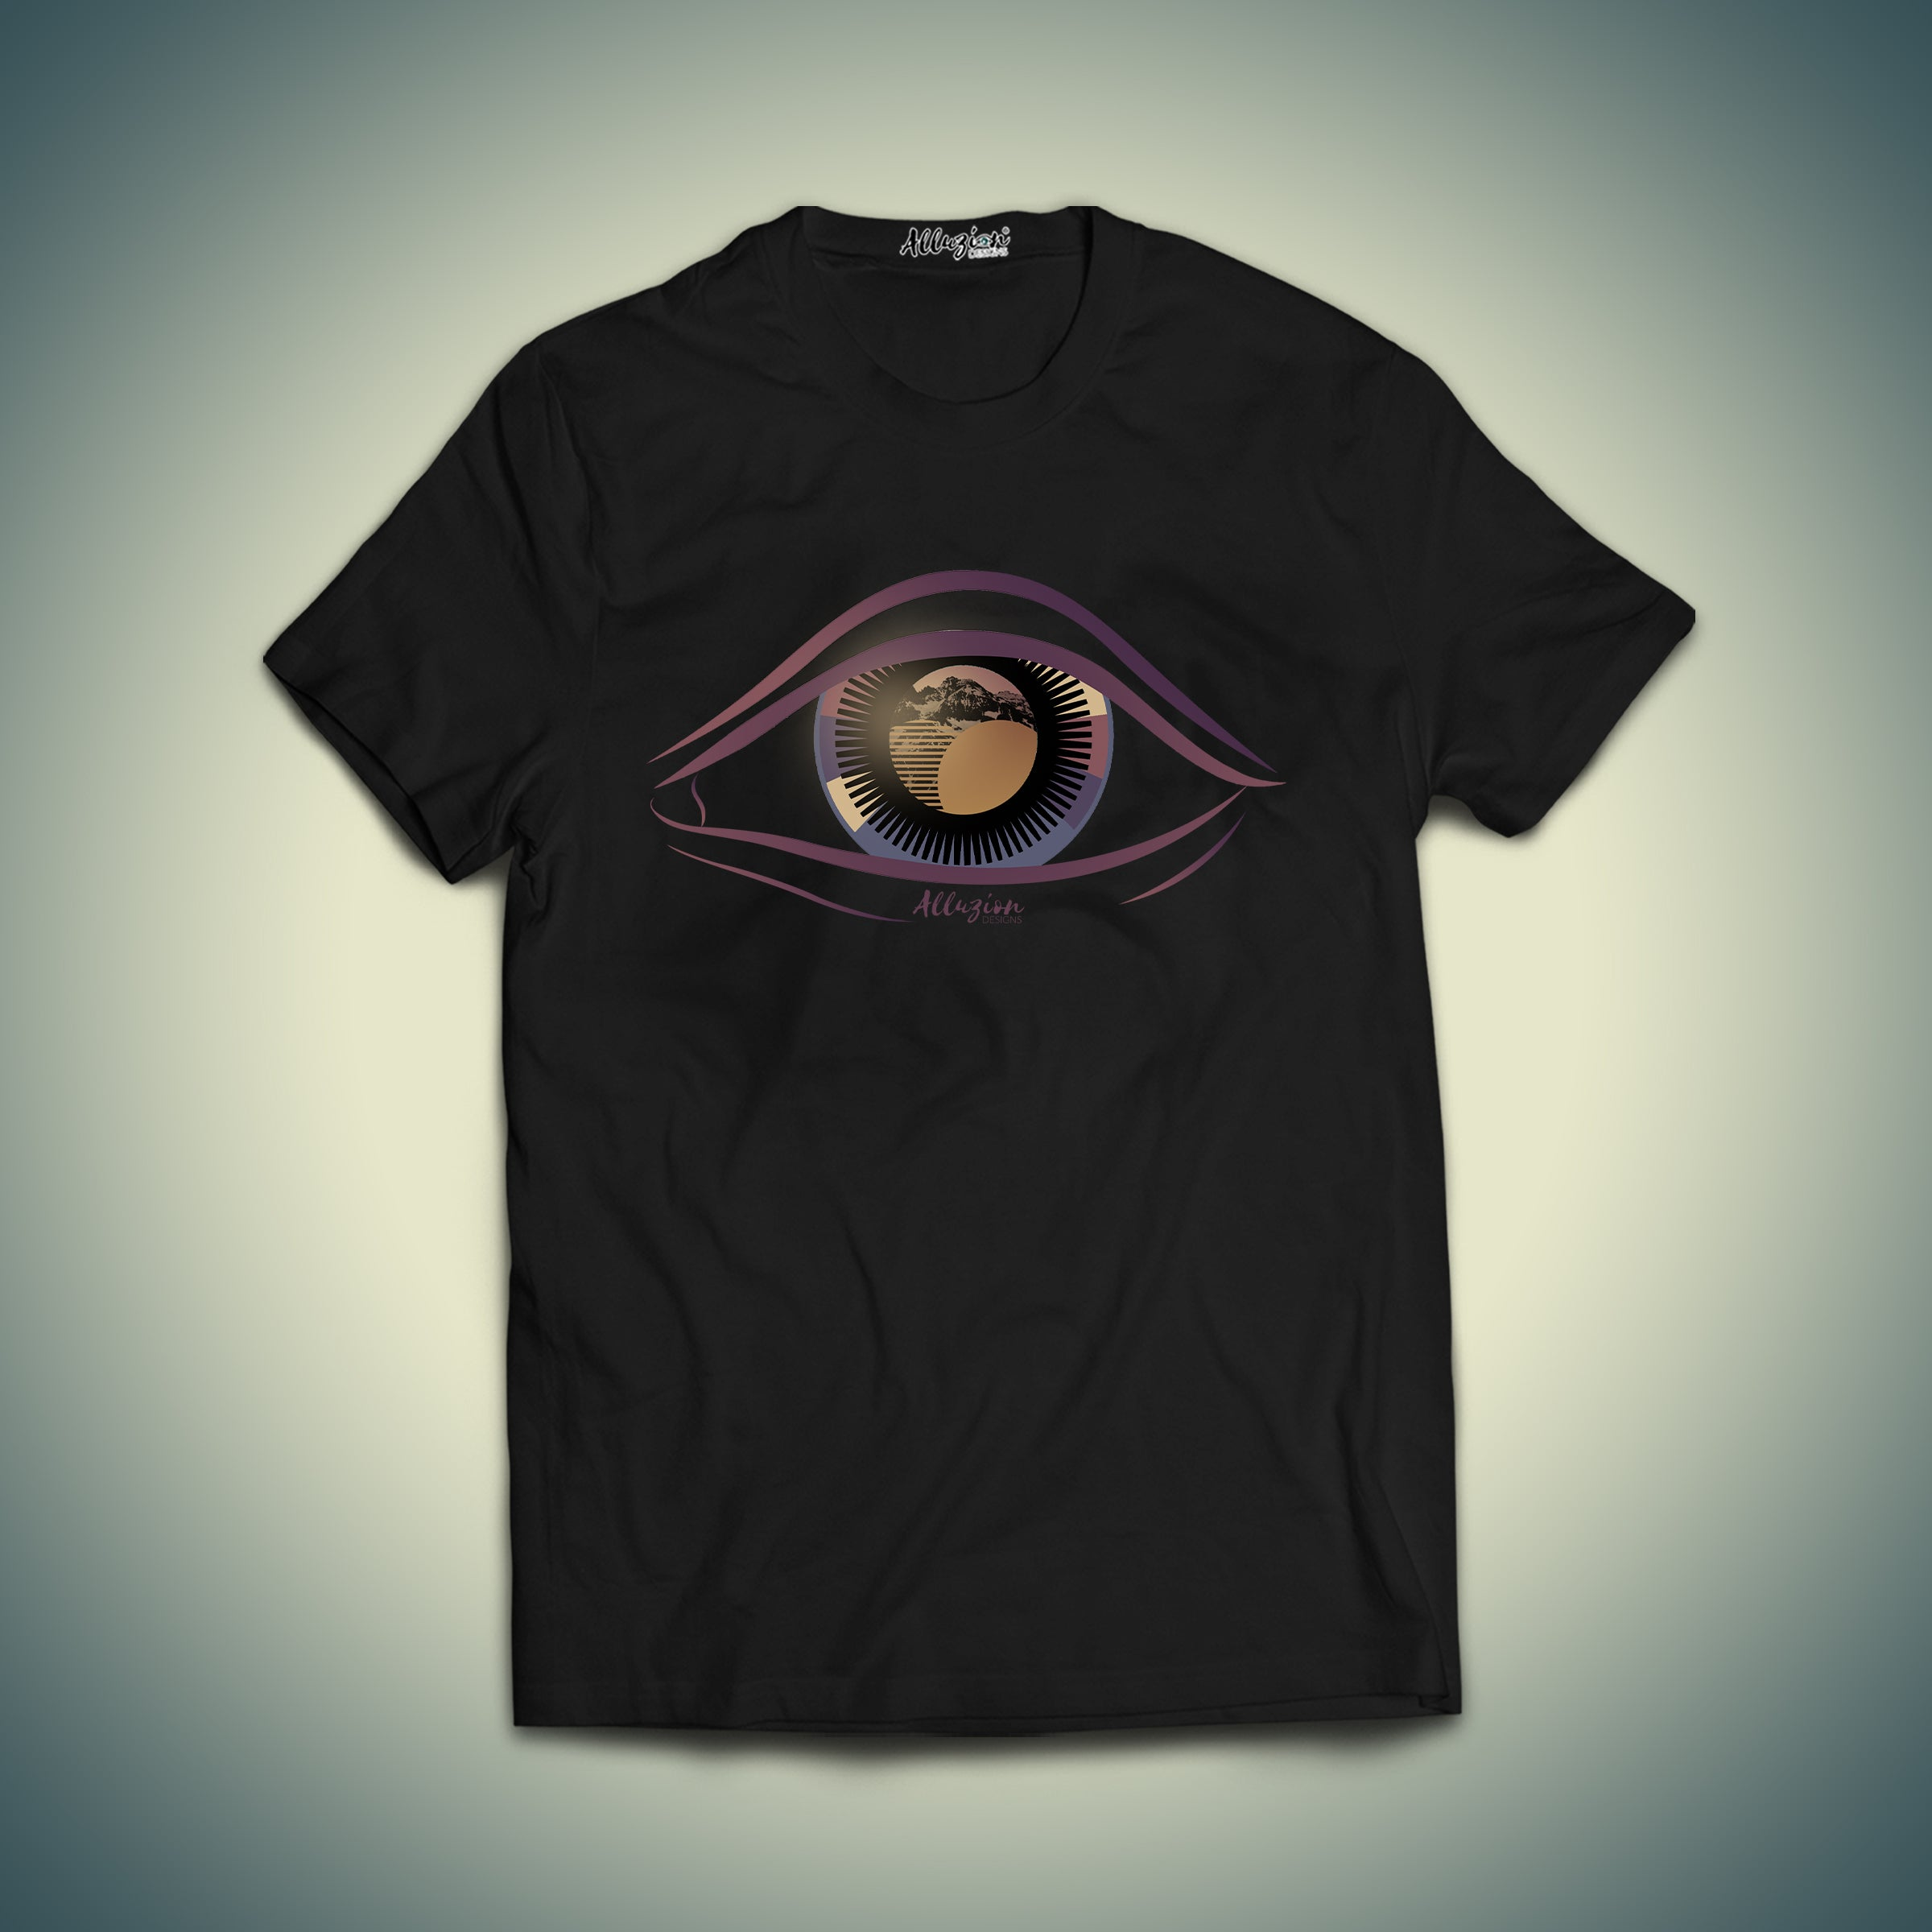 Alluzion Eye 1 T-shirt